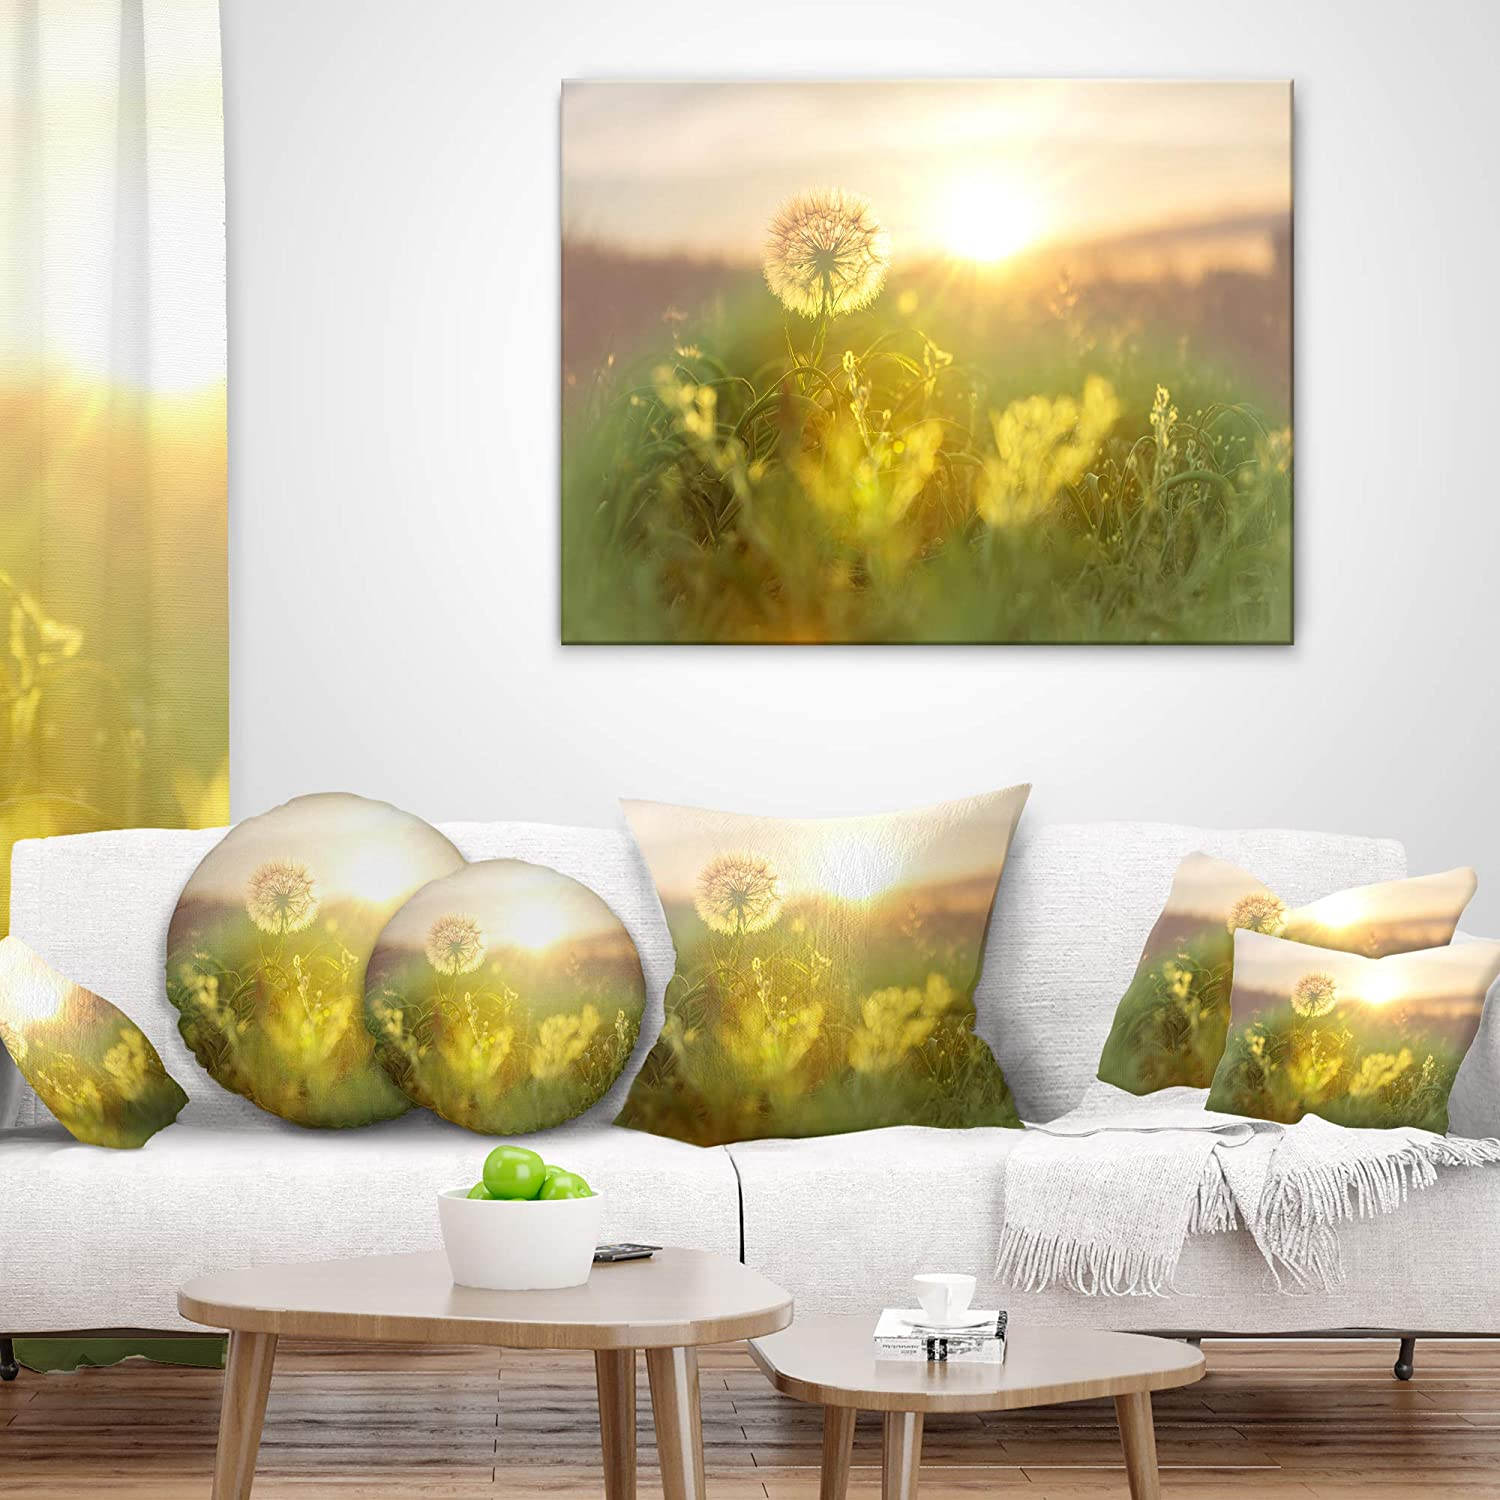 x 26 in in Designart CU12463-26-26 Dandelion Blooming Flower in Field Floral Cushion Cover for Living Room Sofa Throw Pillow 26 in